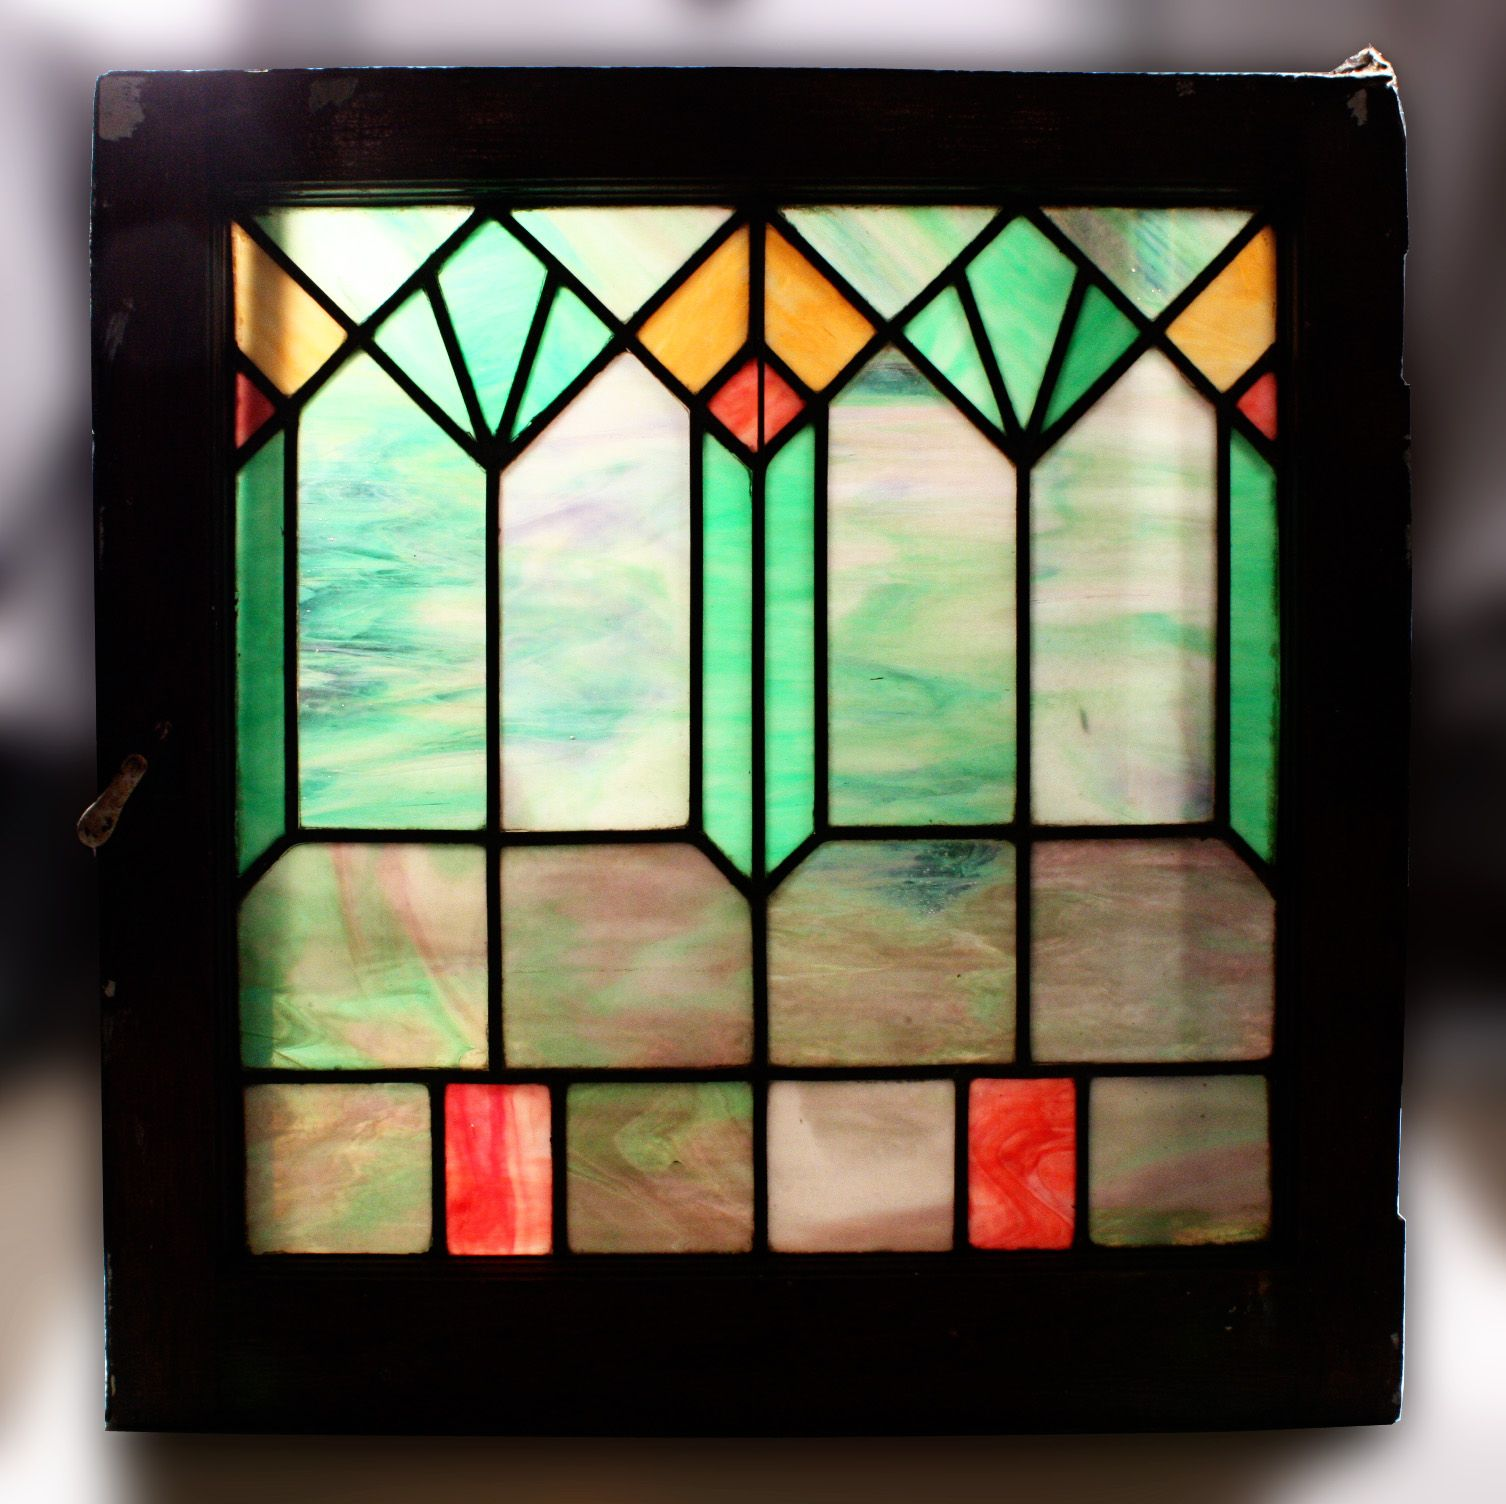 Antique American Arts & Crafts Stained Glass Window | Stained Glass ...